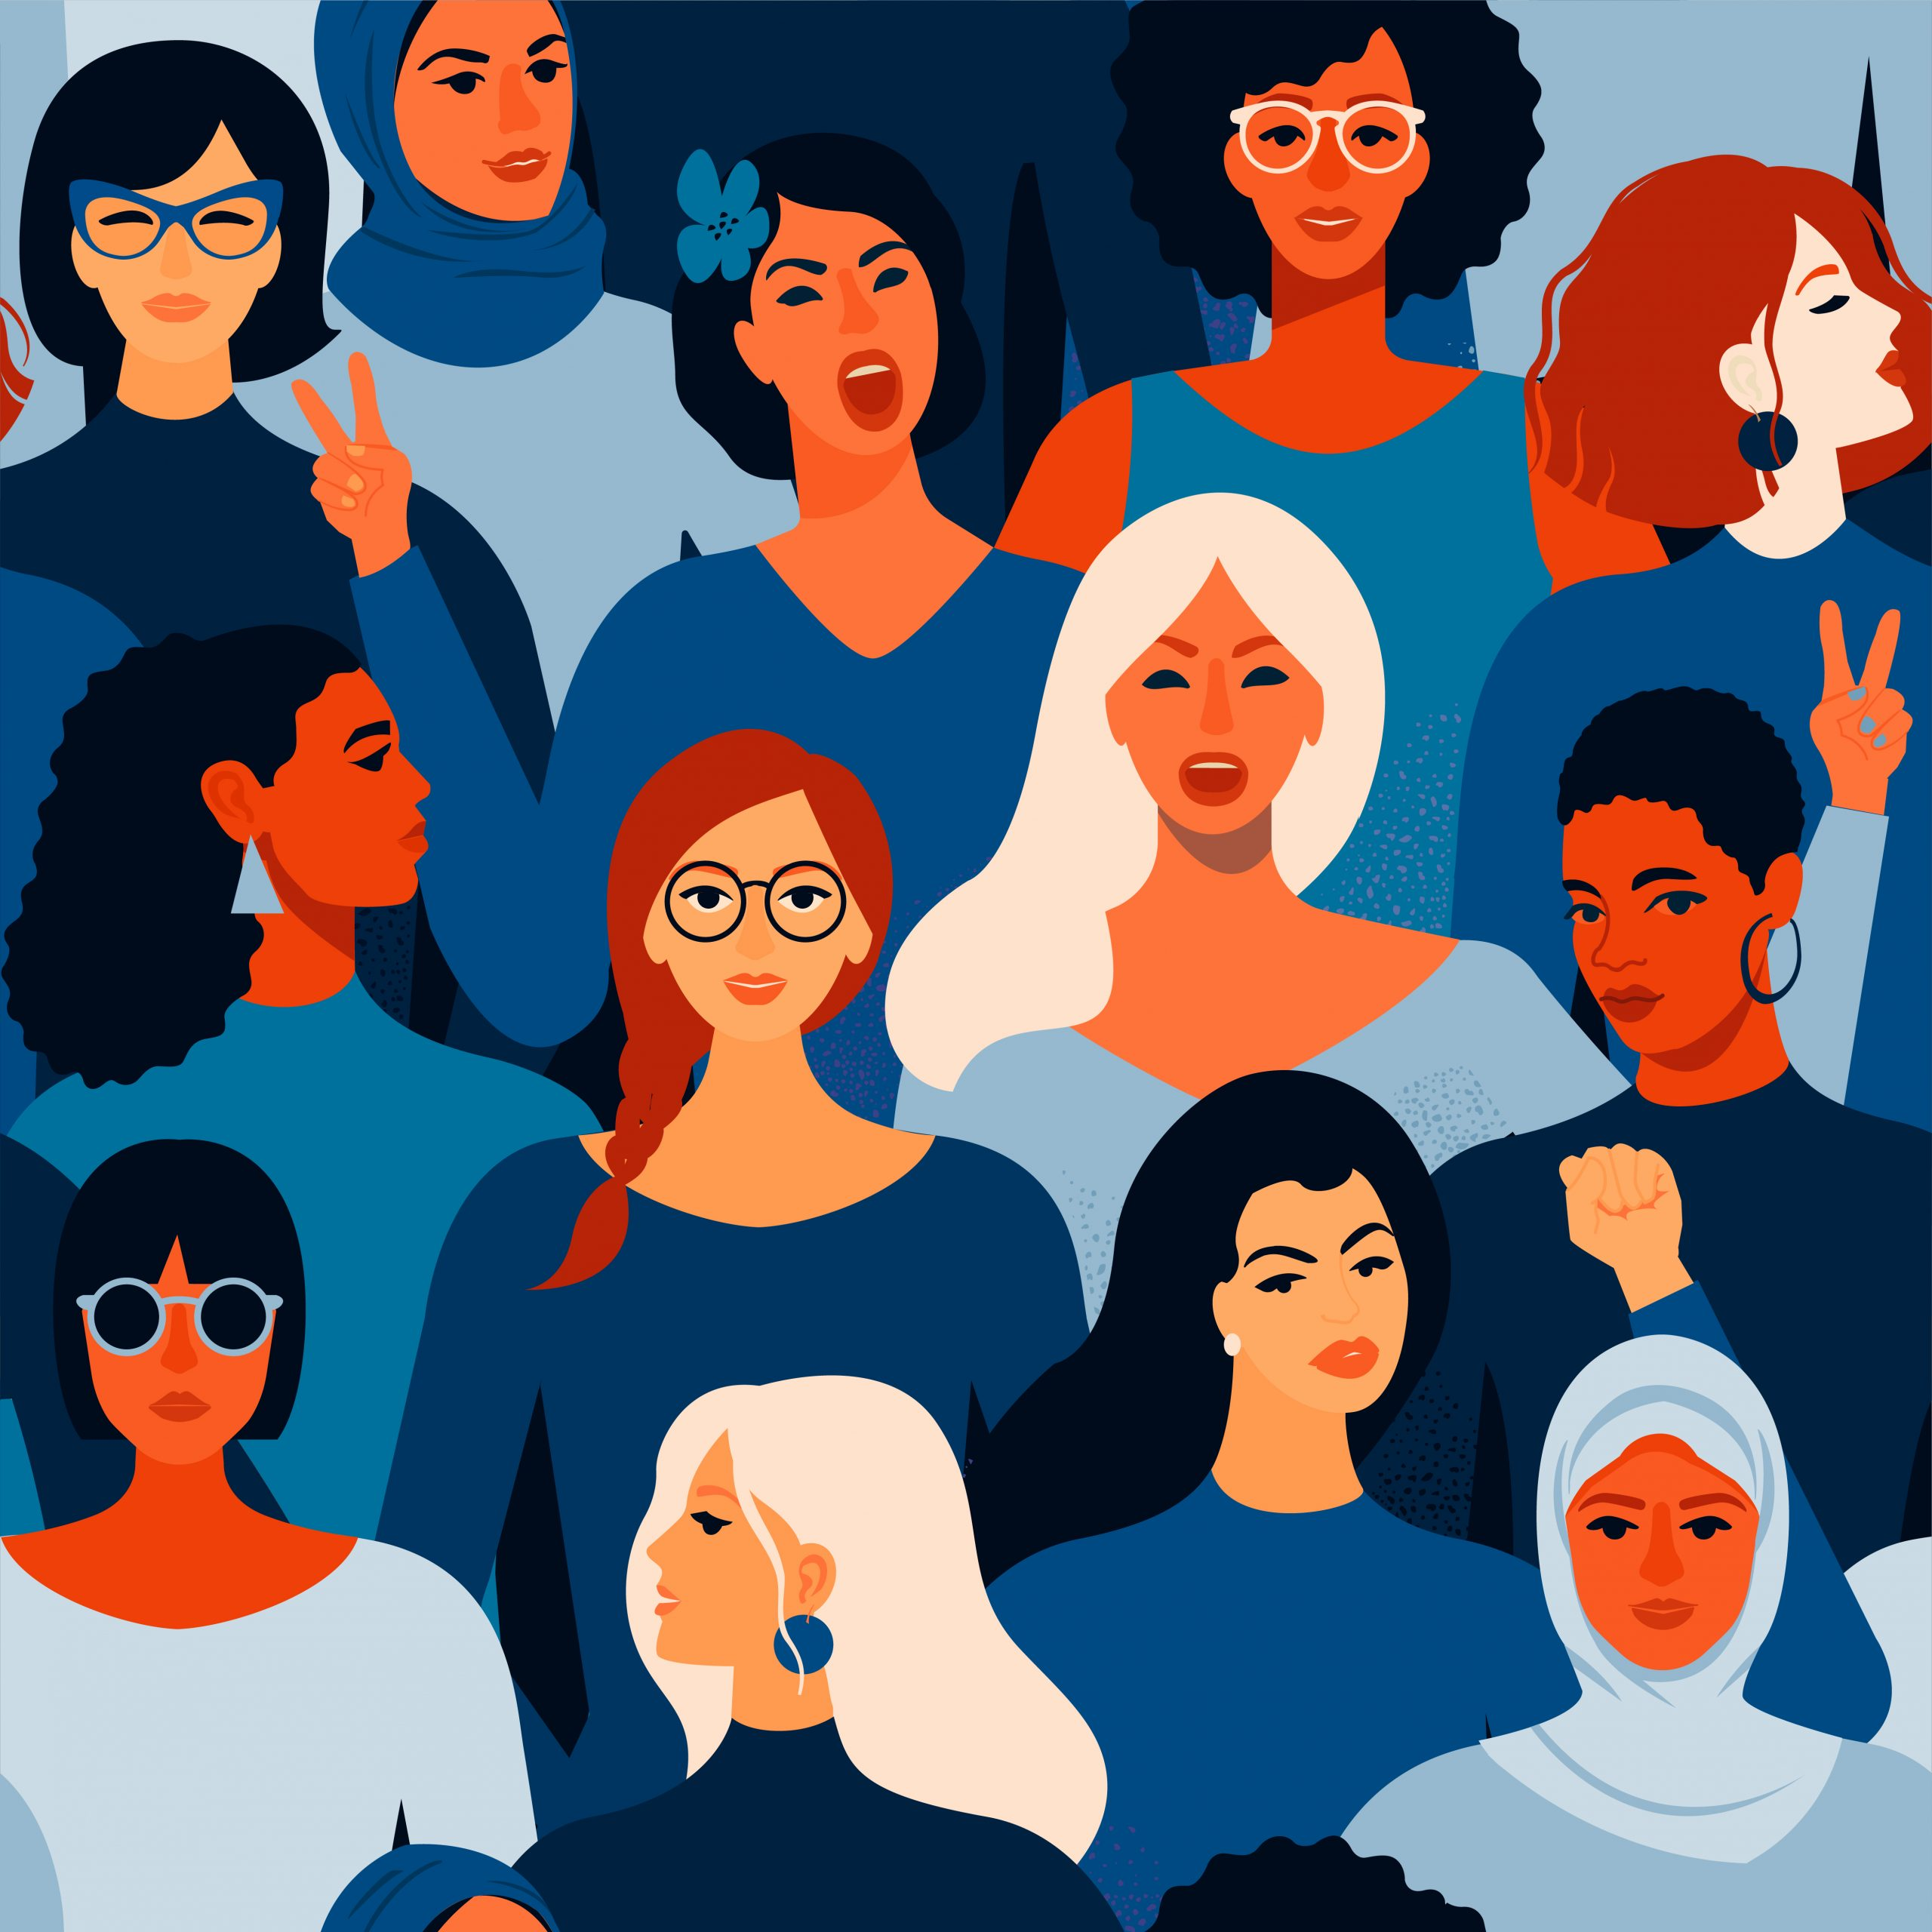 An illustration of different women's faces